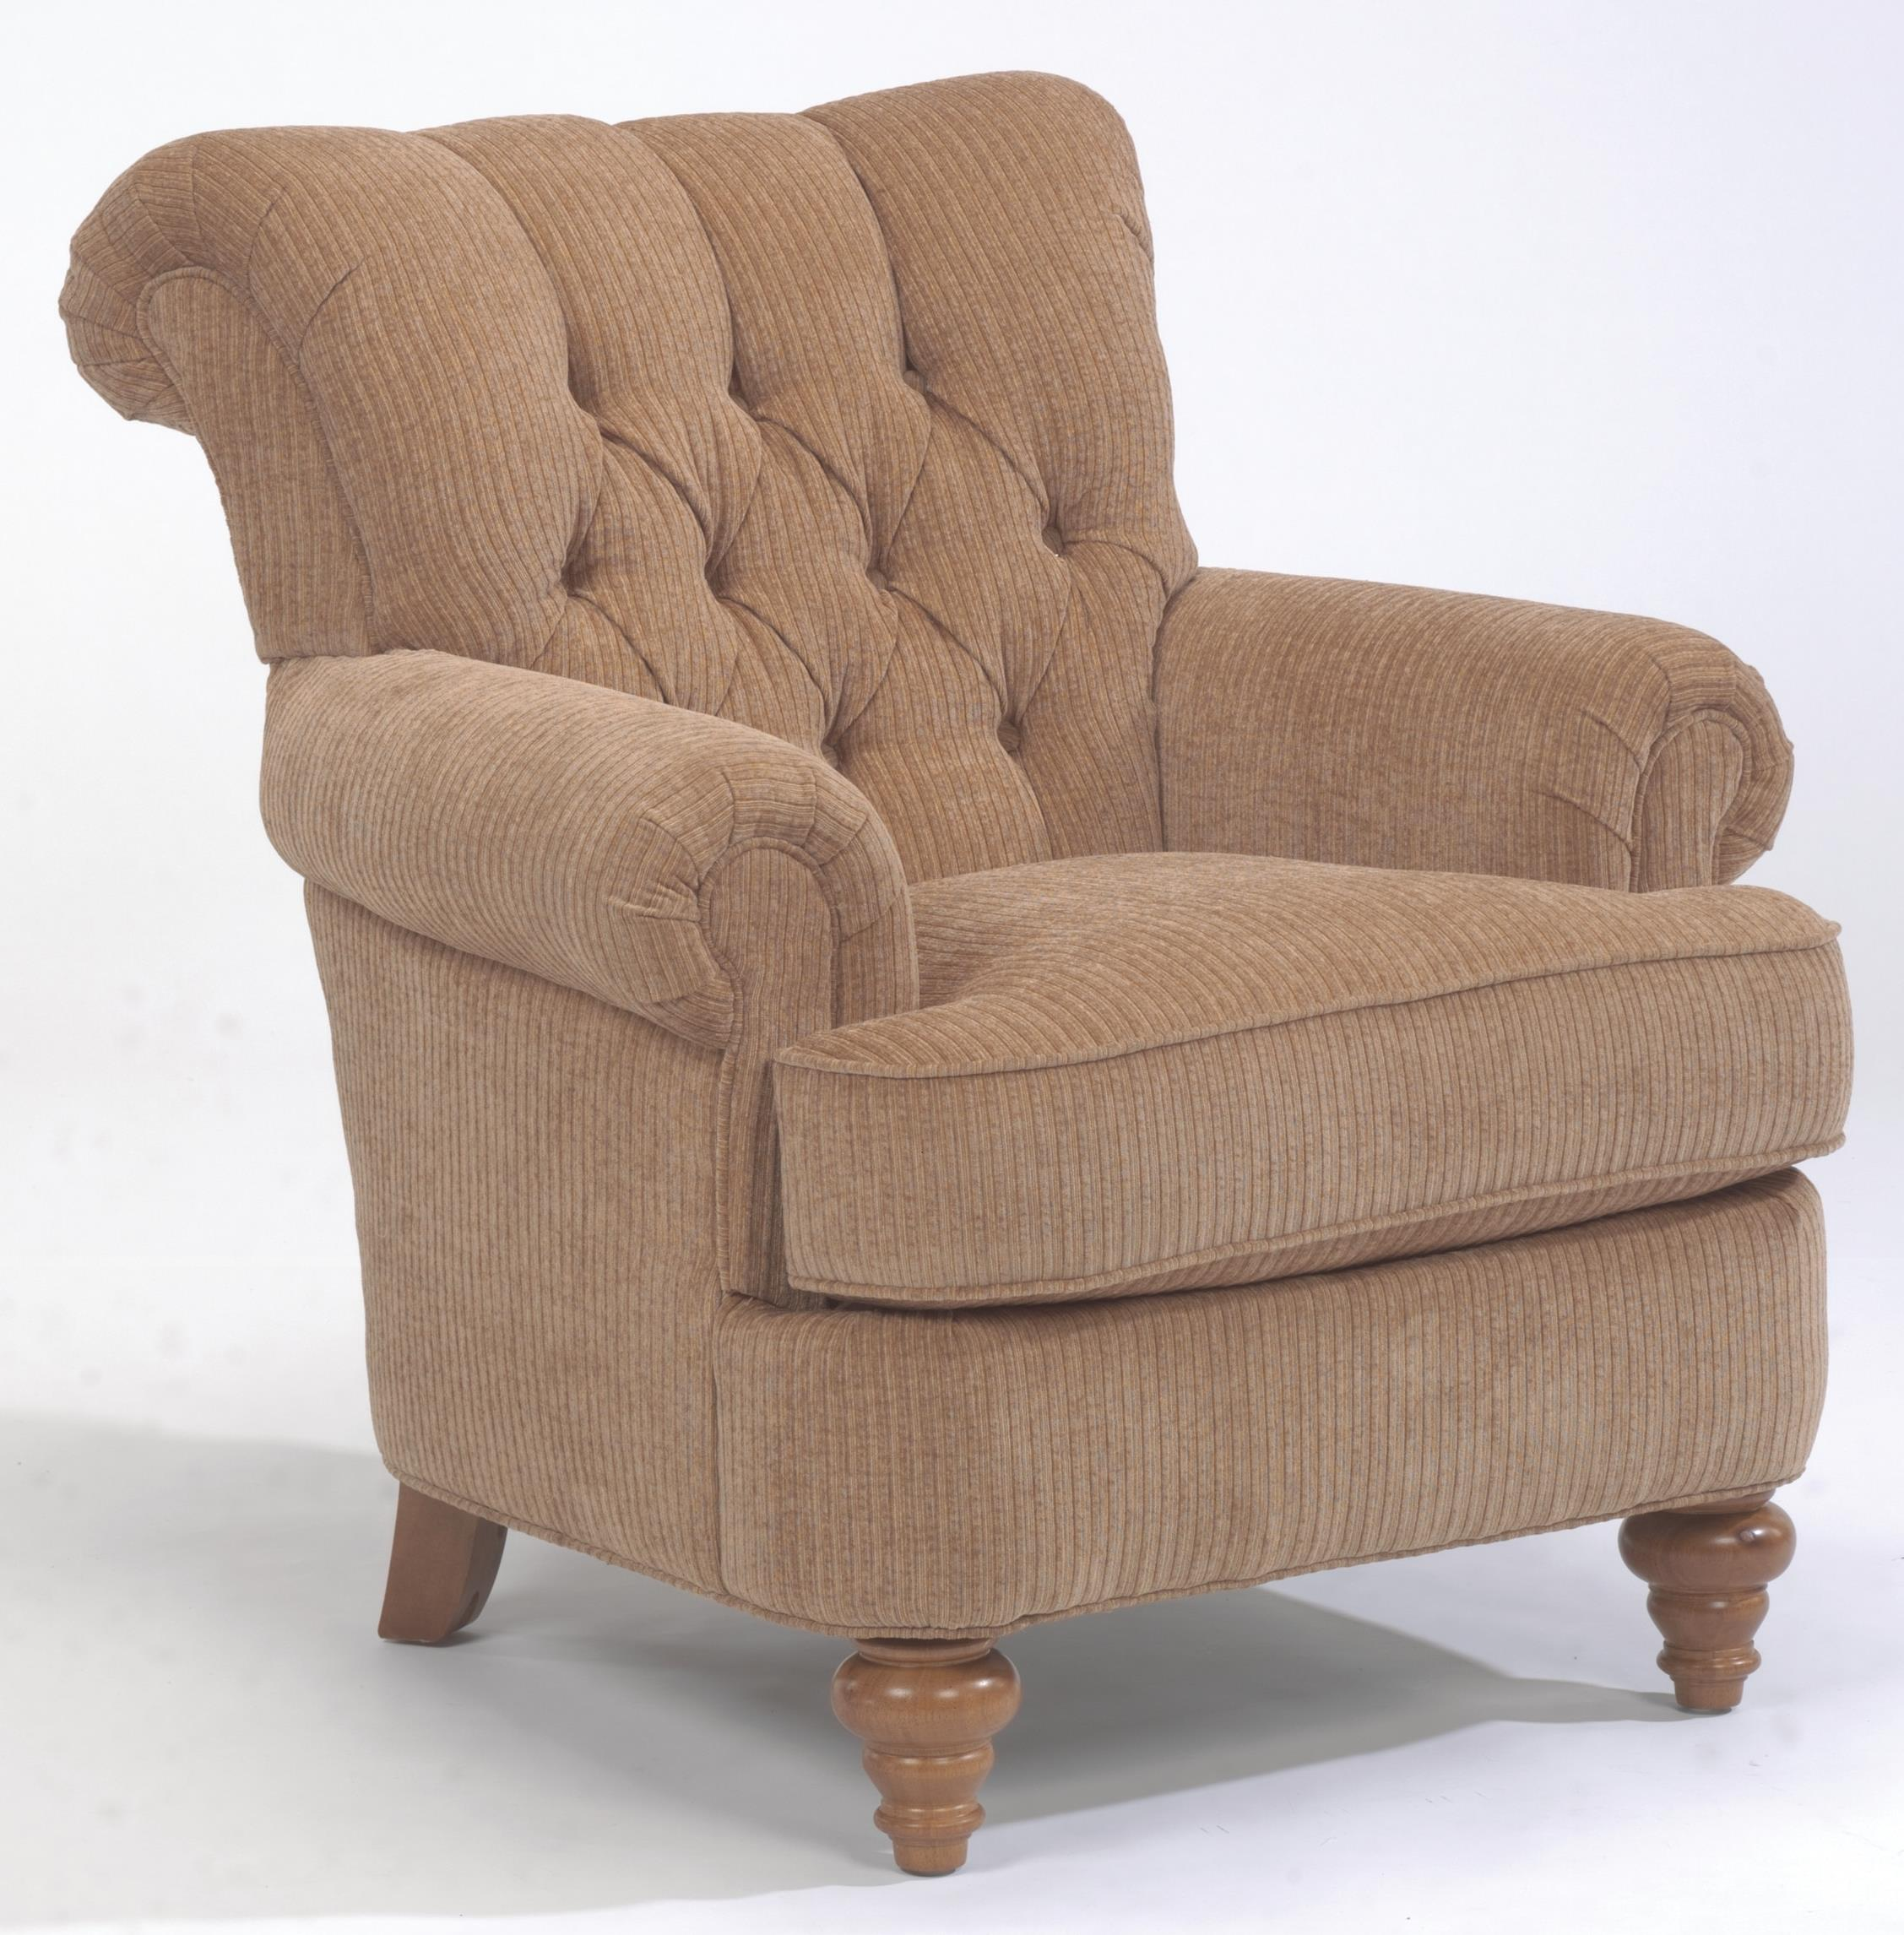 Exceptional South Hampton Tufted Back Chair By Flexsteel